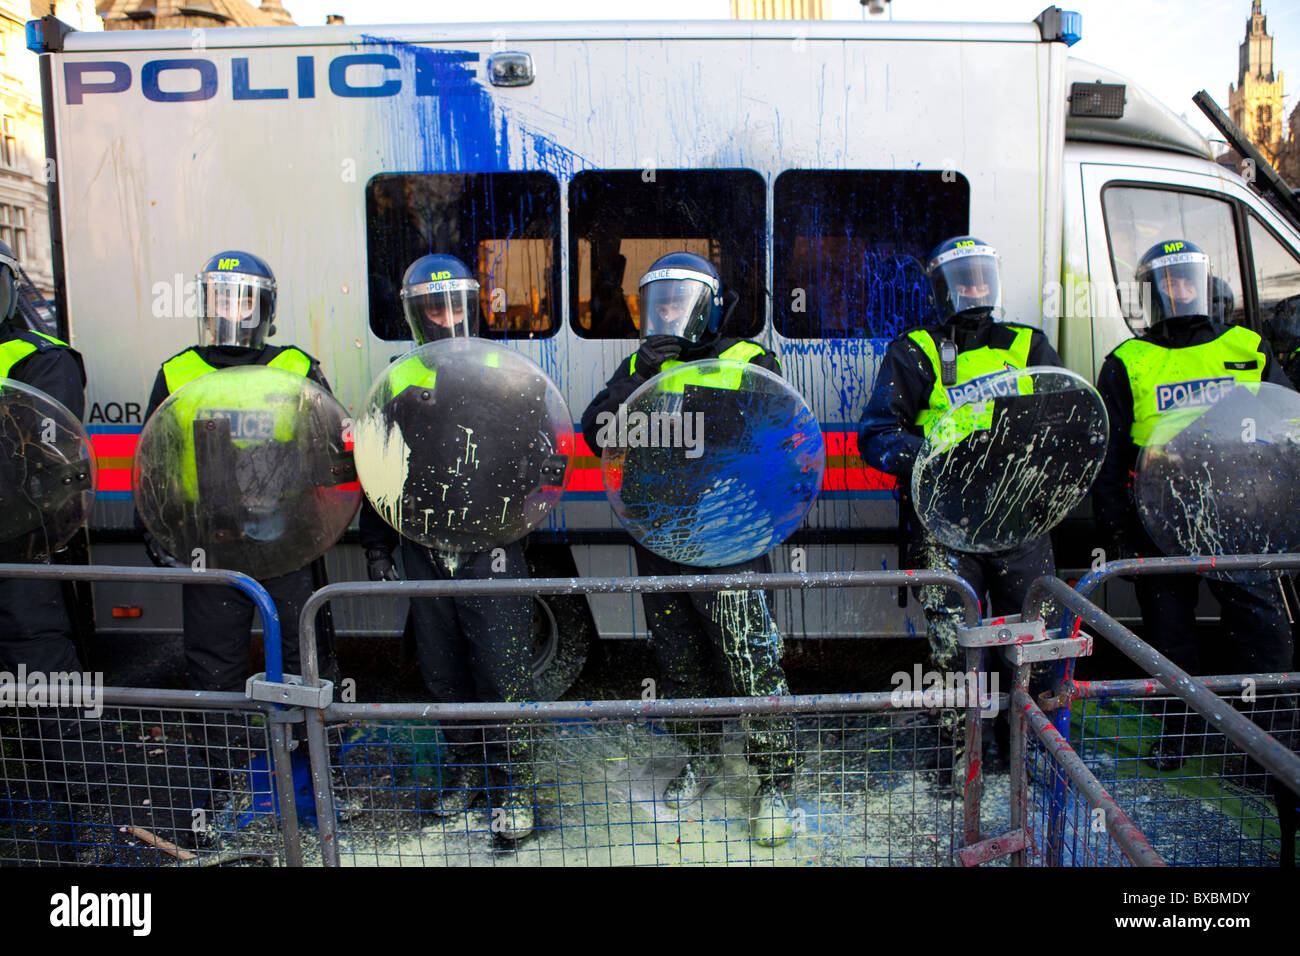 Riot police splattered with paint thrown by protesters during Tuition Fees demonstration in Parliament Square - Stock Image